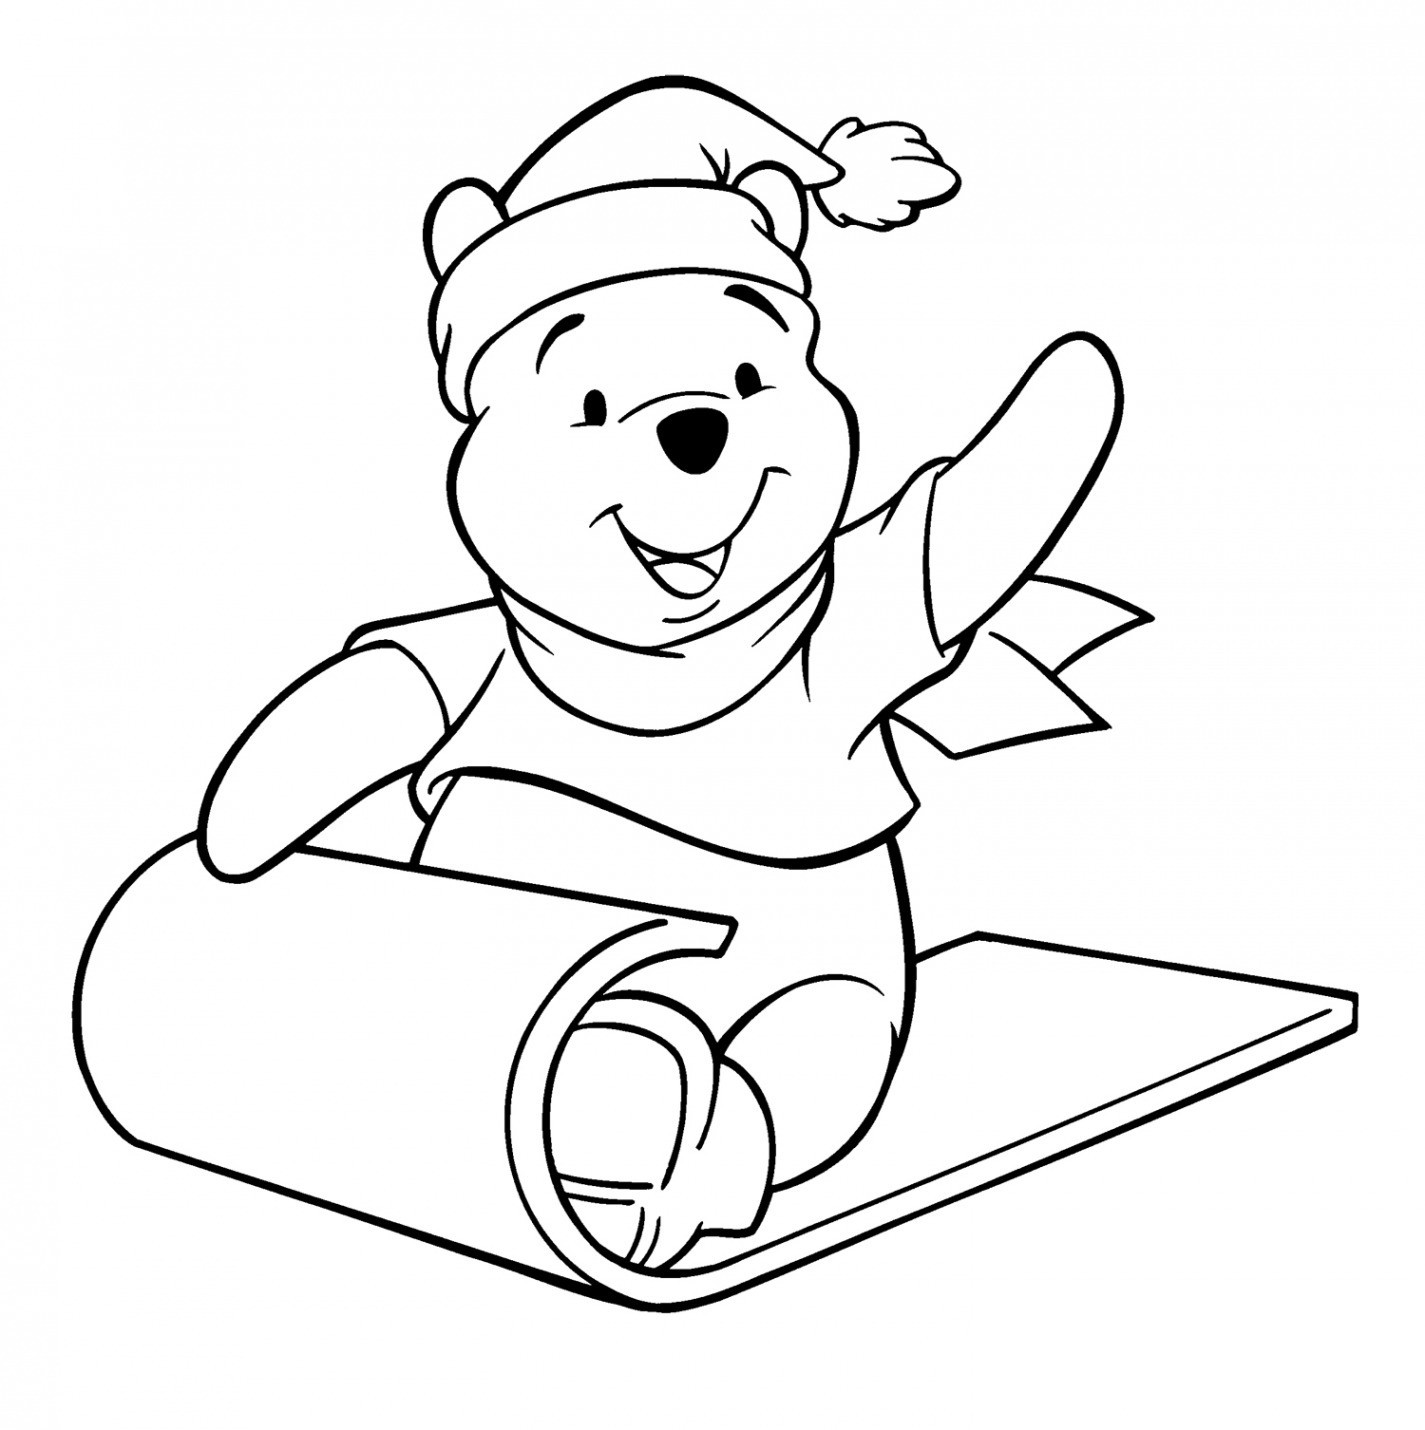 Winnie Pooh Baby Malvorlagen Frisch Winnie the Pooh Winter Coloring Pages Coloring Pages Coloring Pages Stock